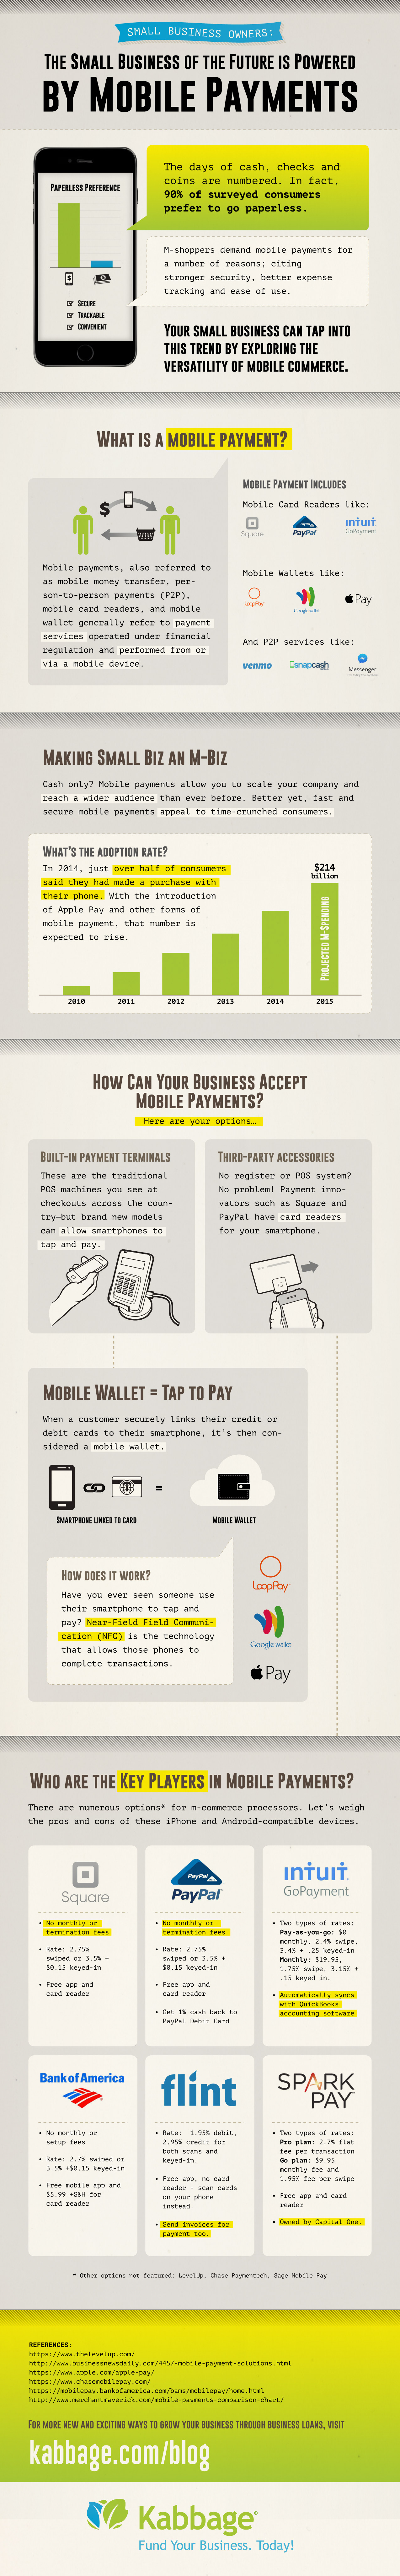 Kabbage-mobilepay-infographic-full-01 copy